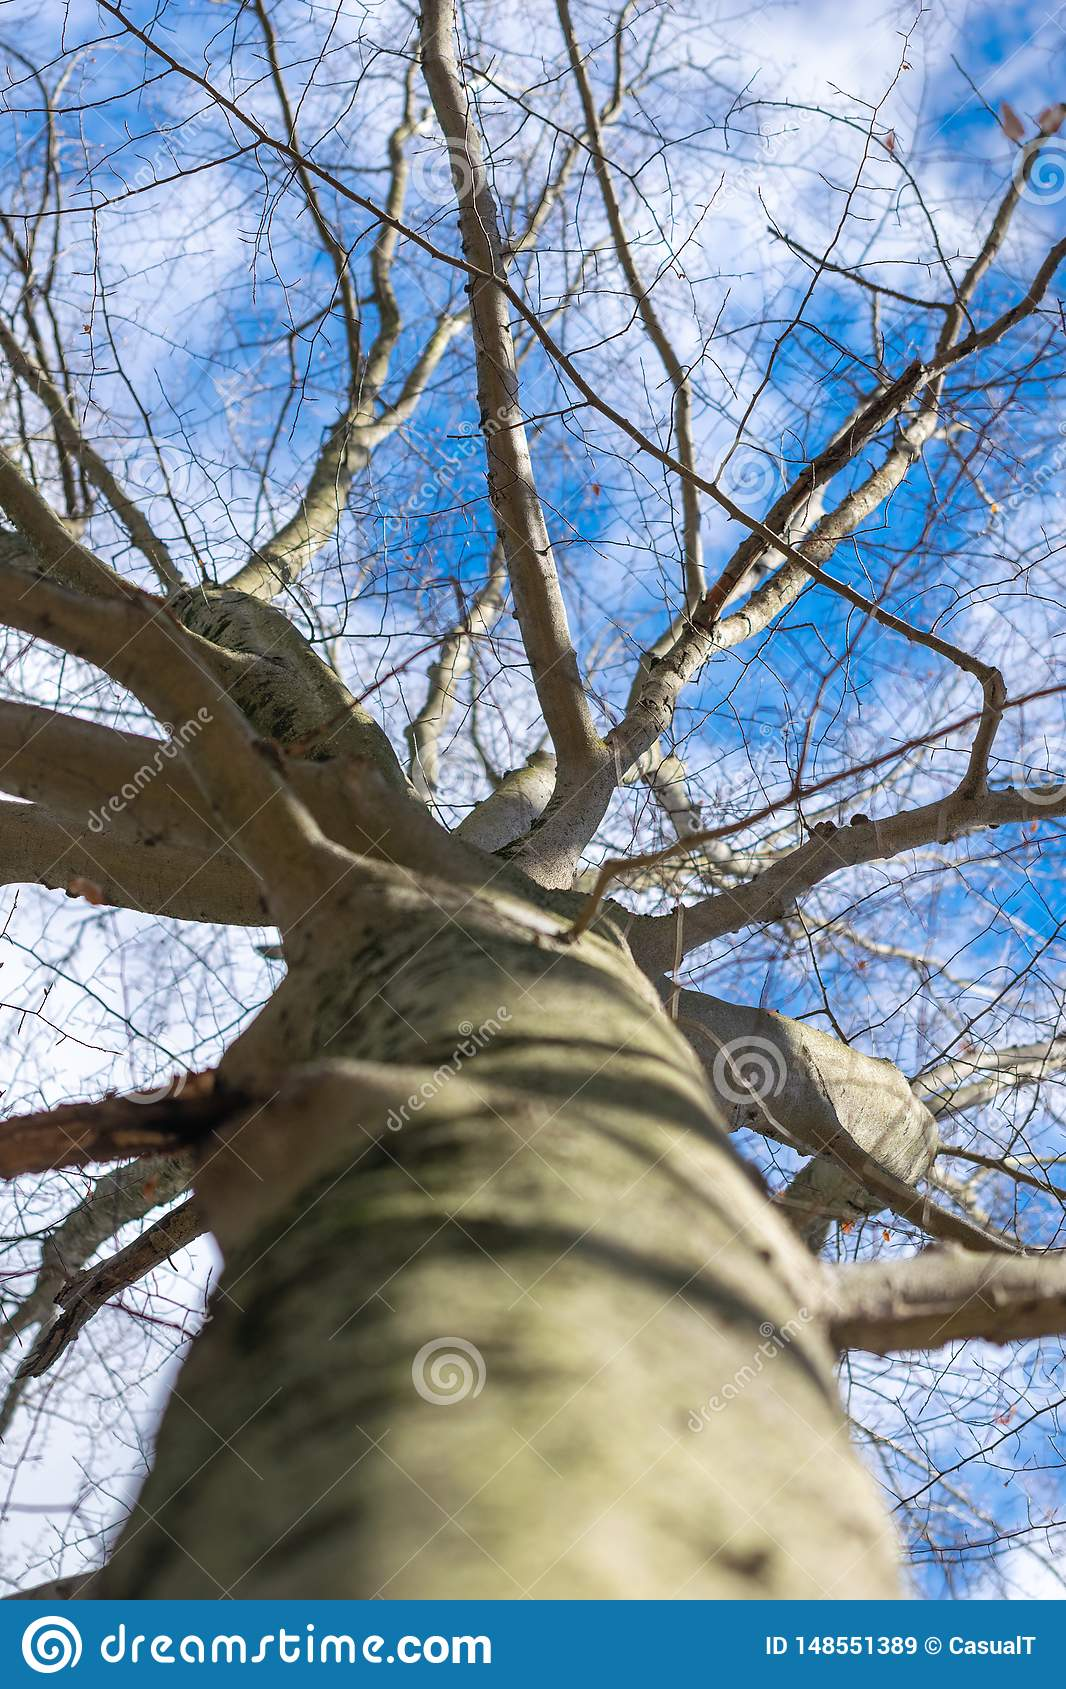 Looking up a tree trunk, toward leafless branches and a clear blue winter sky